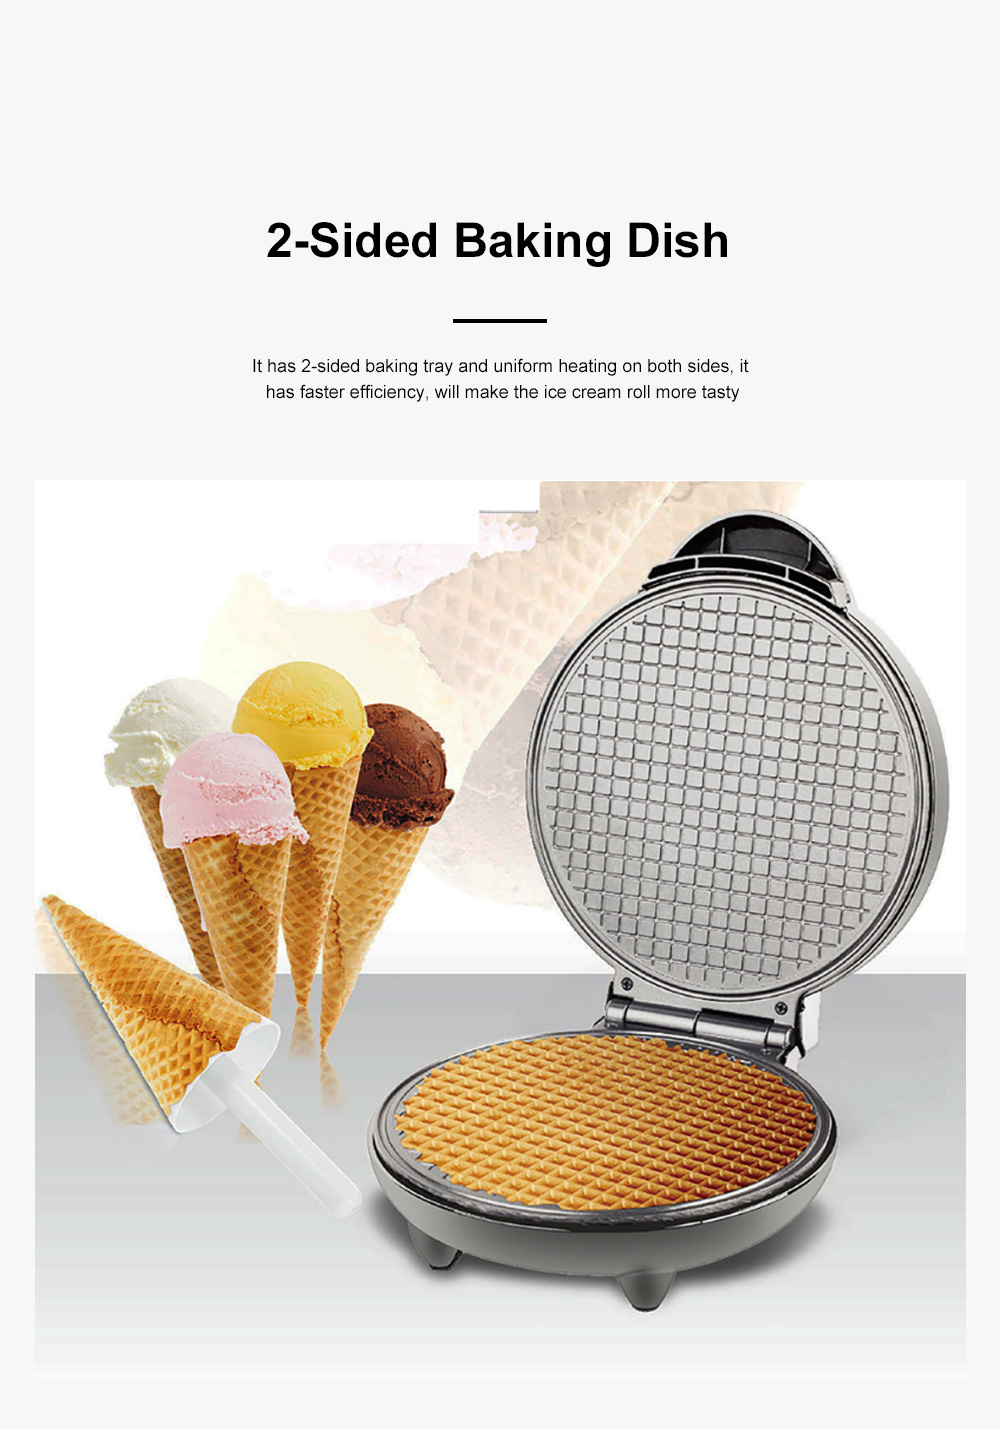 European-style Cone Crispy Egg Roll Machine Multifunctional Professional Round Ice Cream Waffle Cone Maker 2